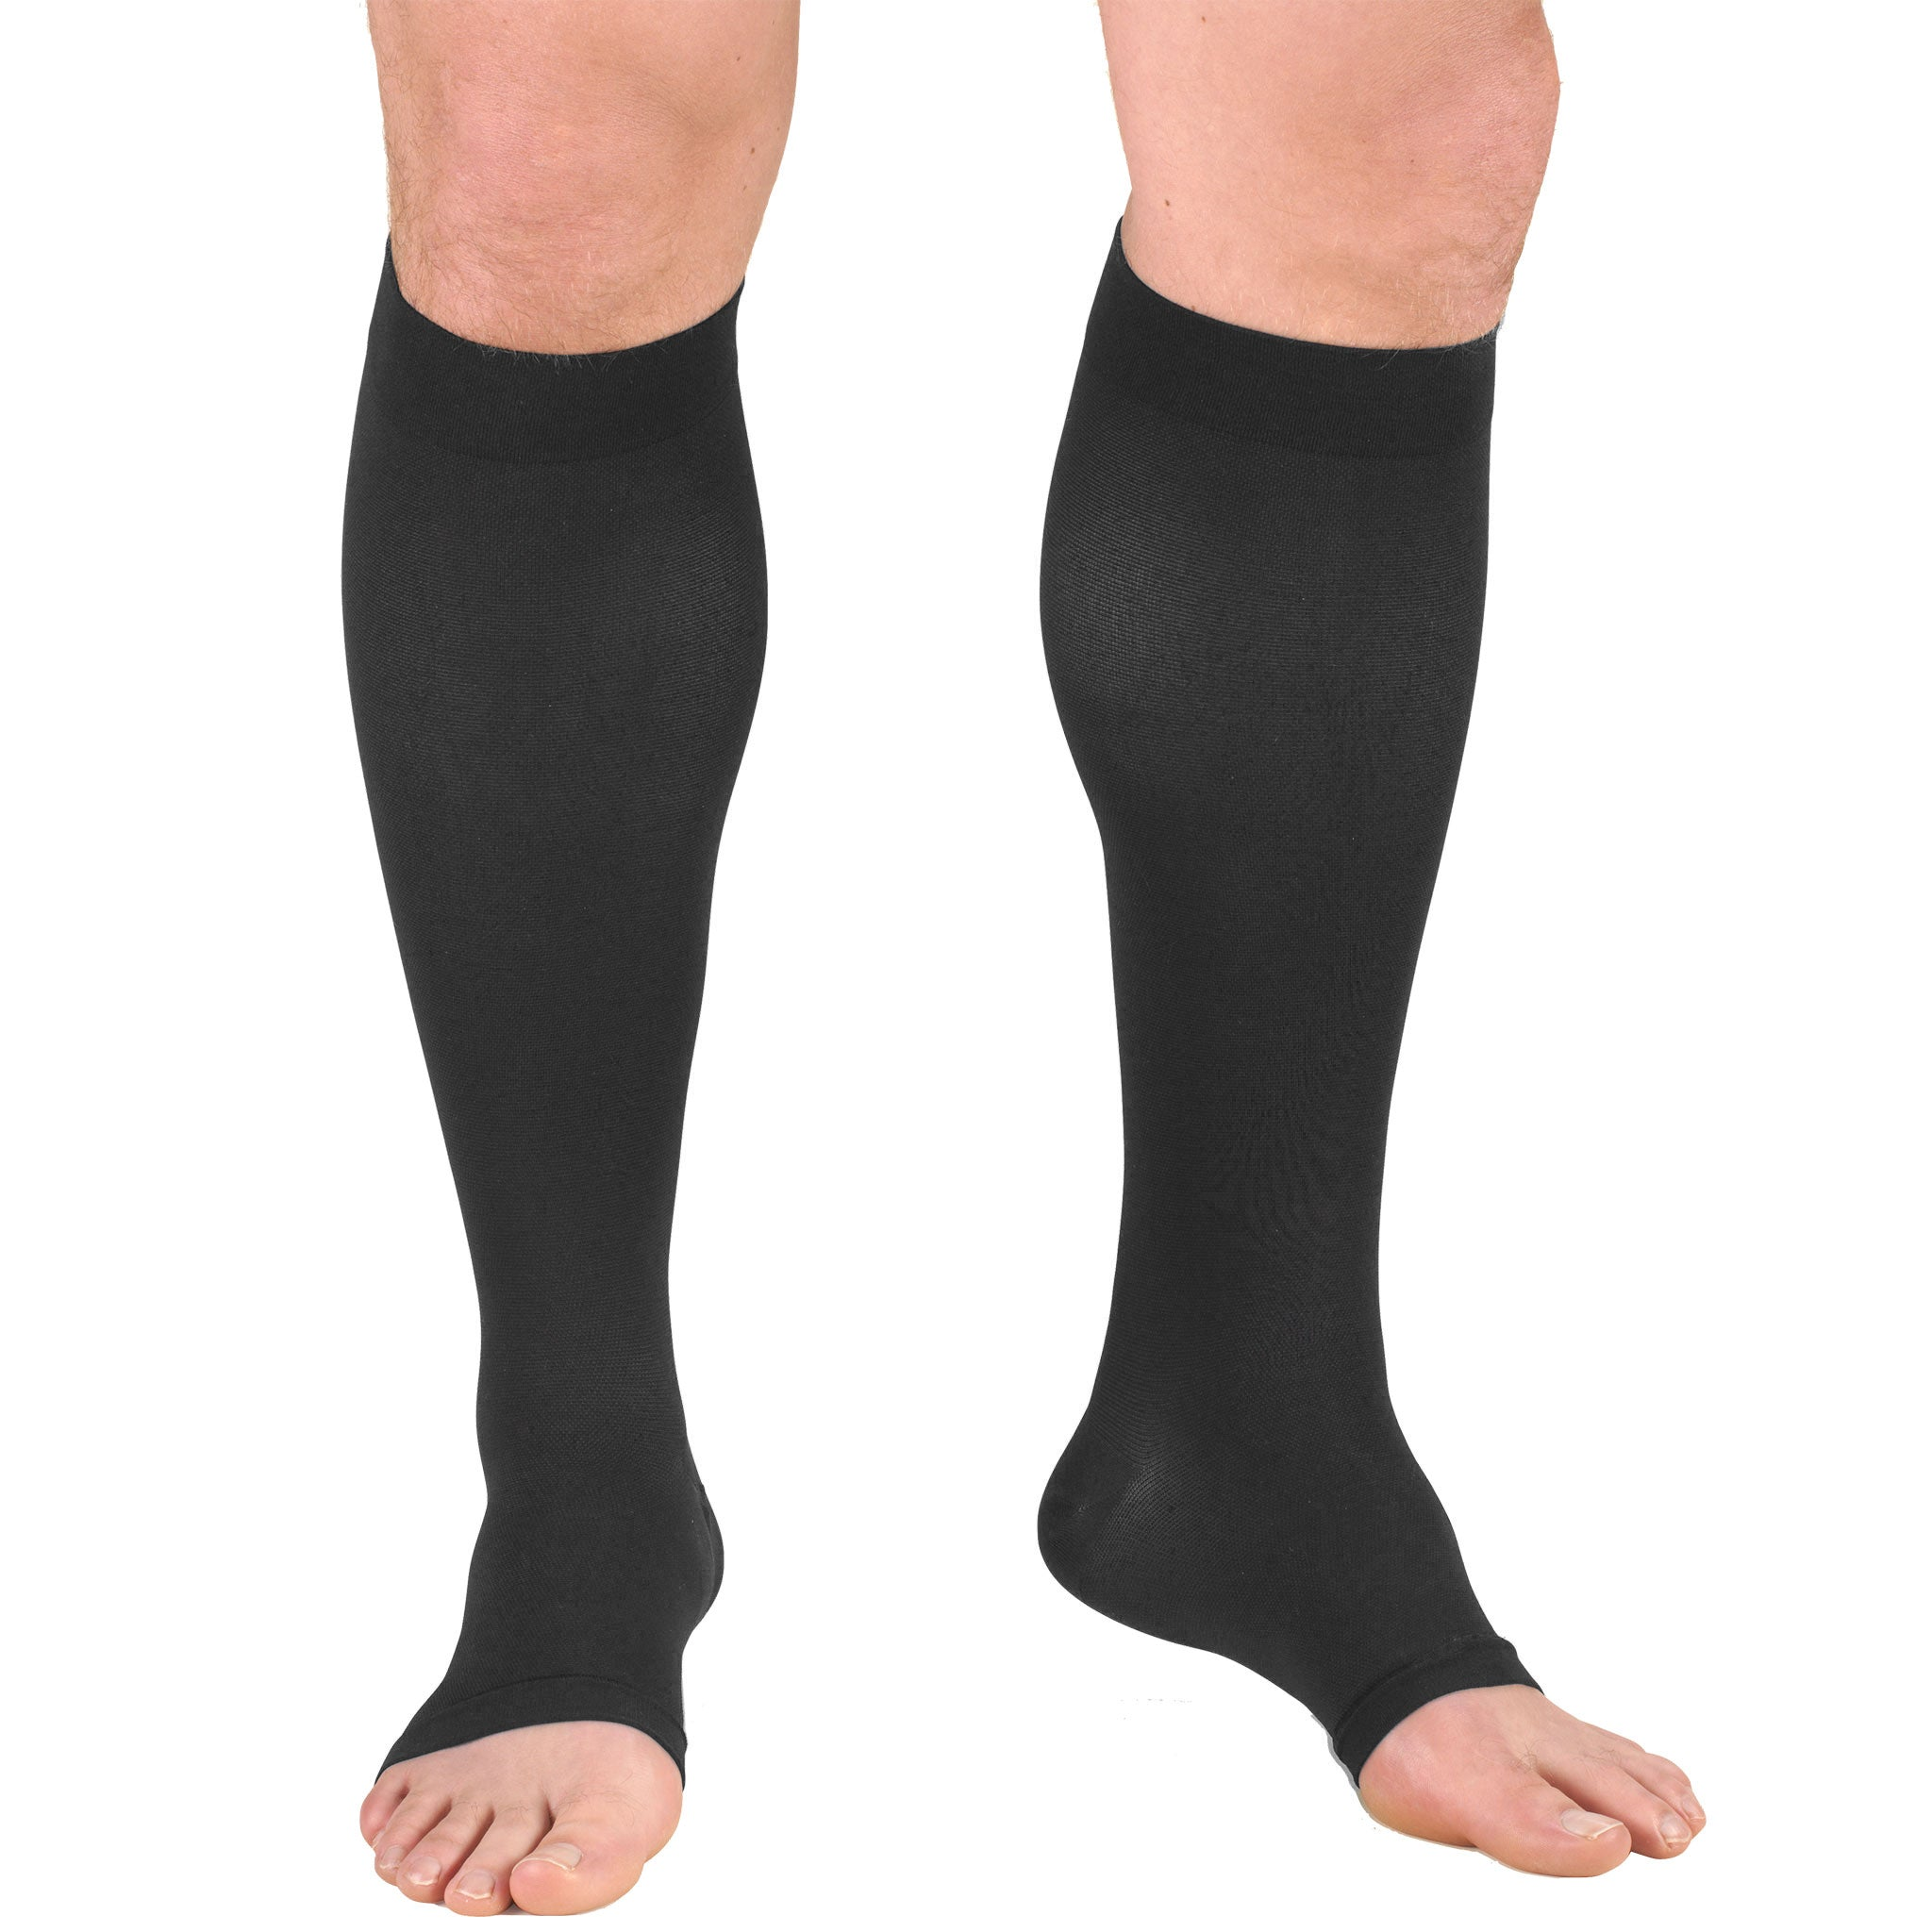 0845 Knee High Open Toe Charcoal Medical Stockings